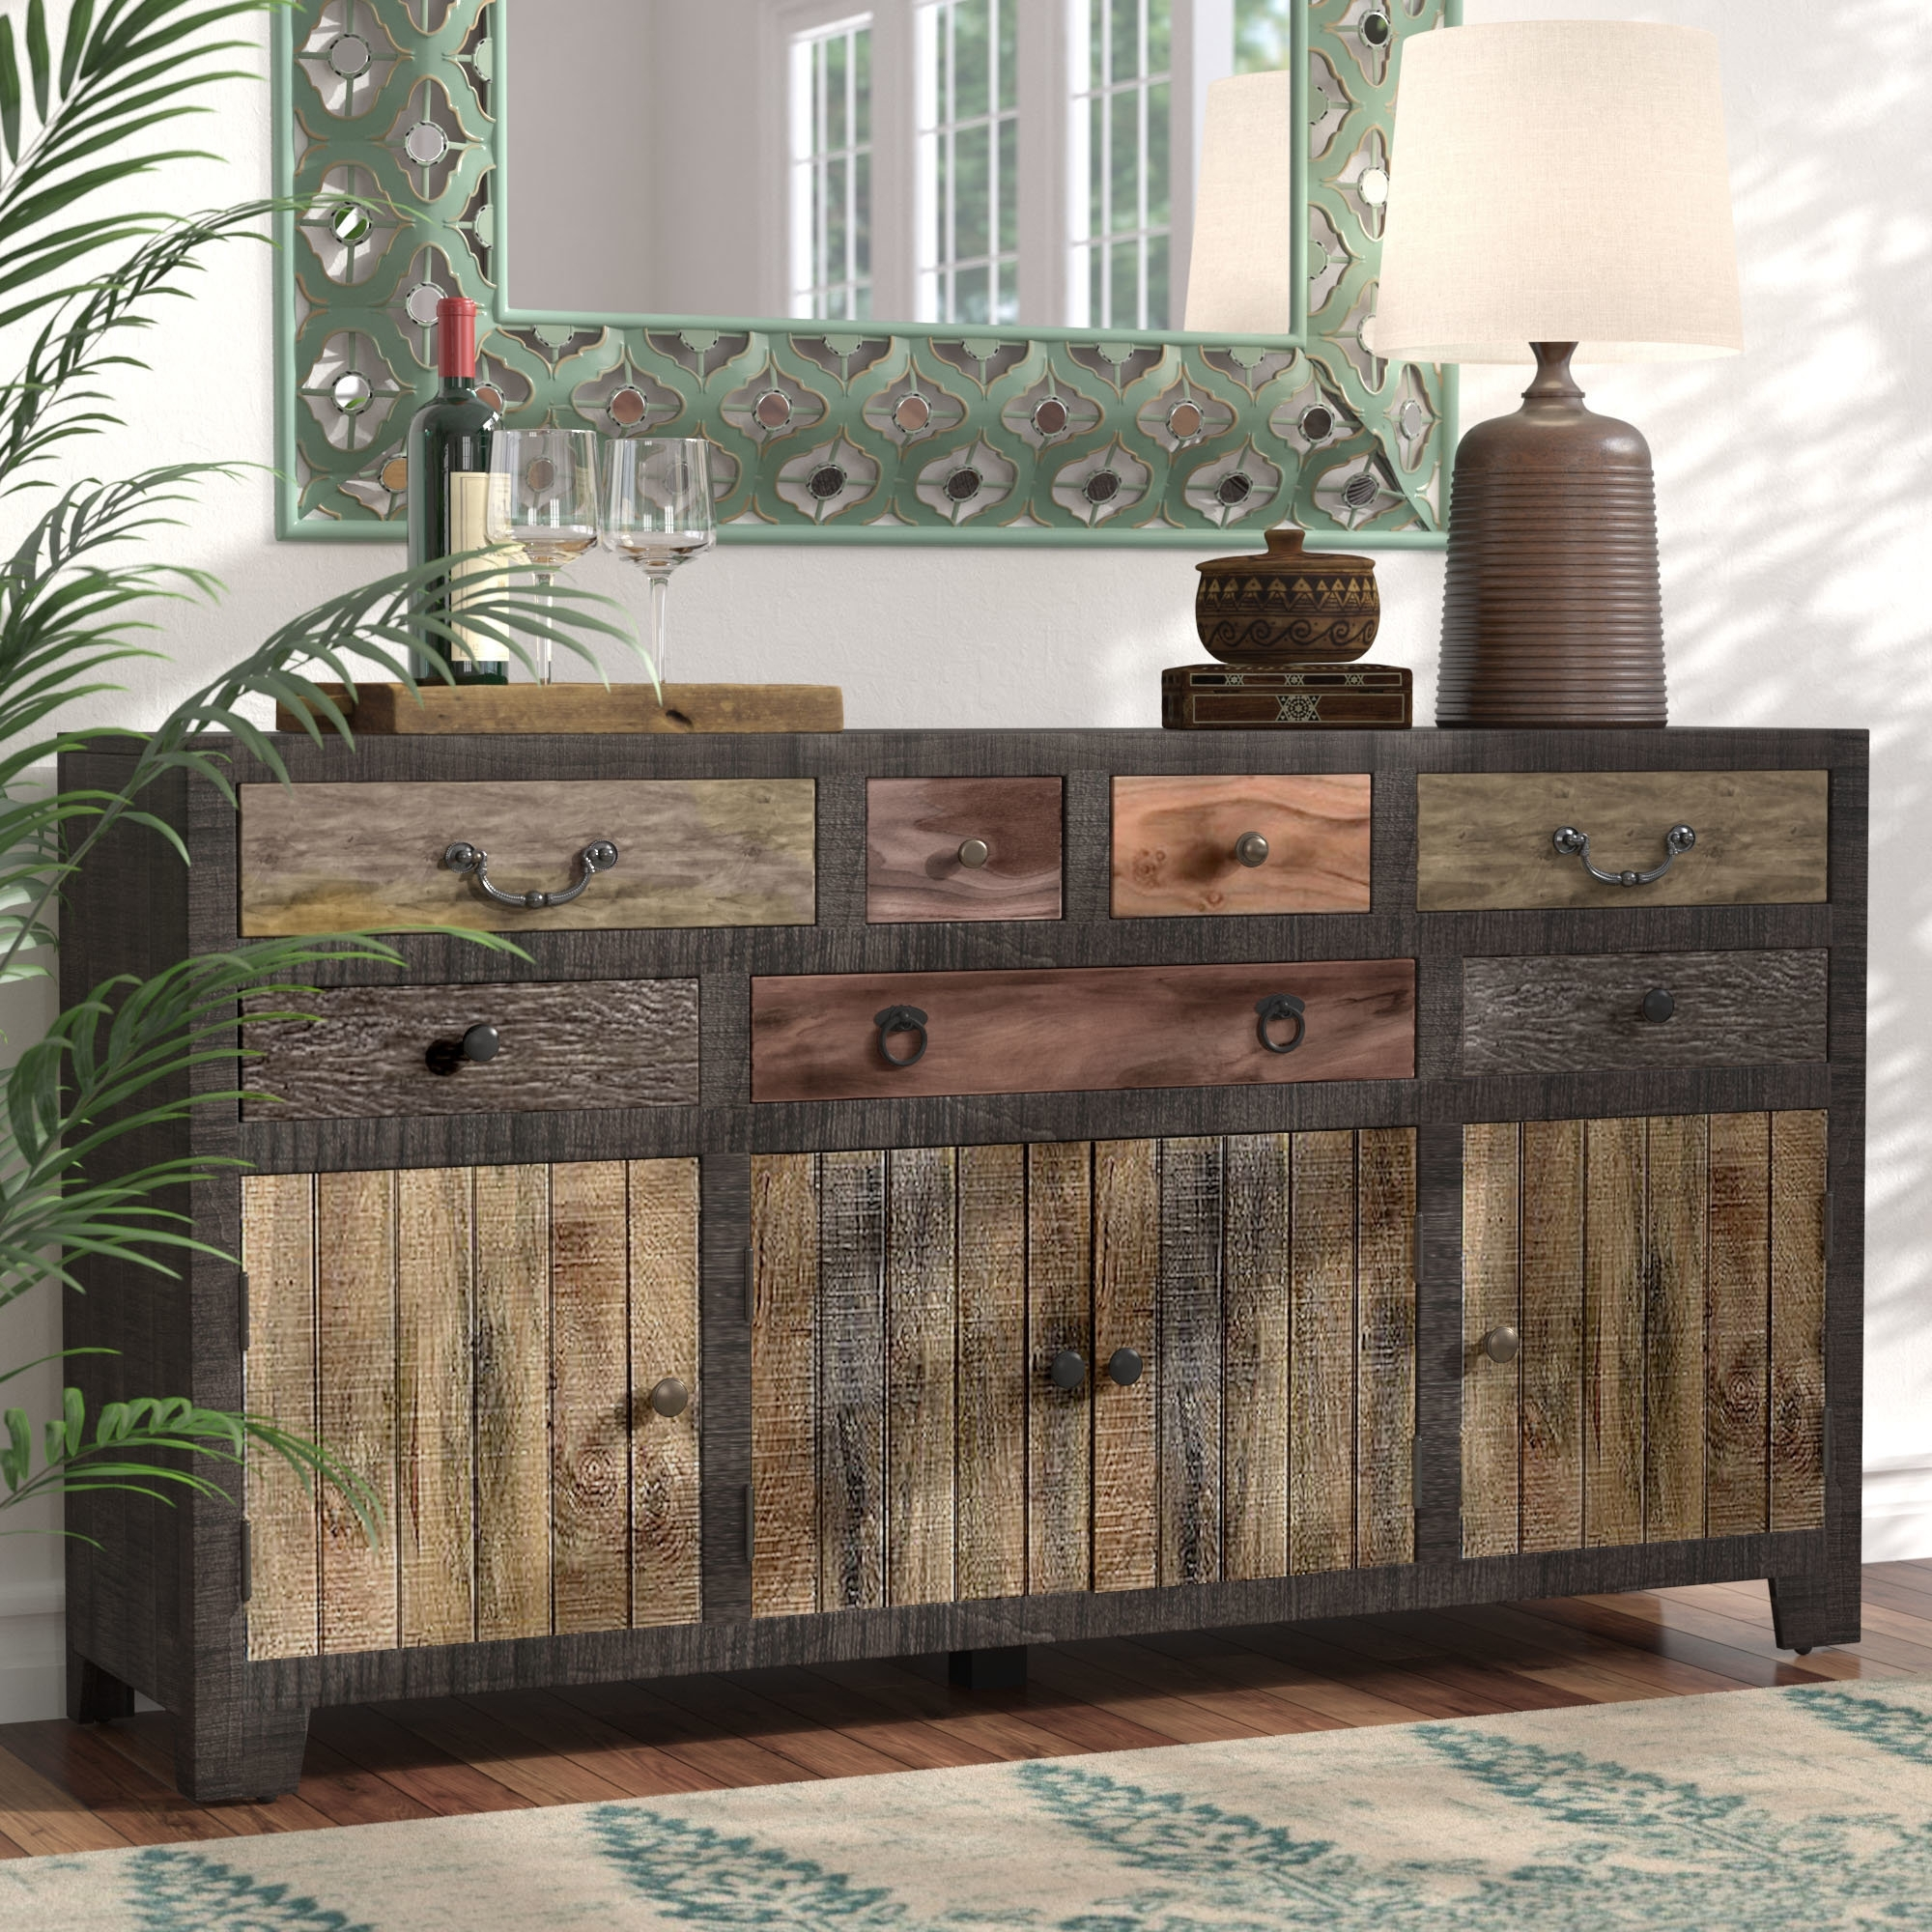 World Menagerie Moultry 7 Drawer 4 Door Sideboard & Reviews | Wayfair With Most Recently Released 4 Door/4 Drawer Metal Inserts Sideboards (#20 of 20)